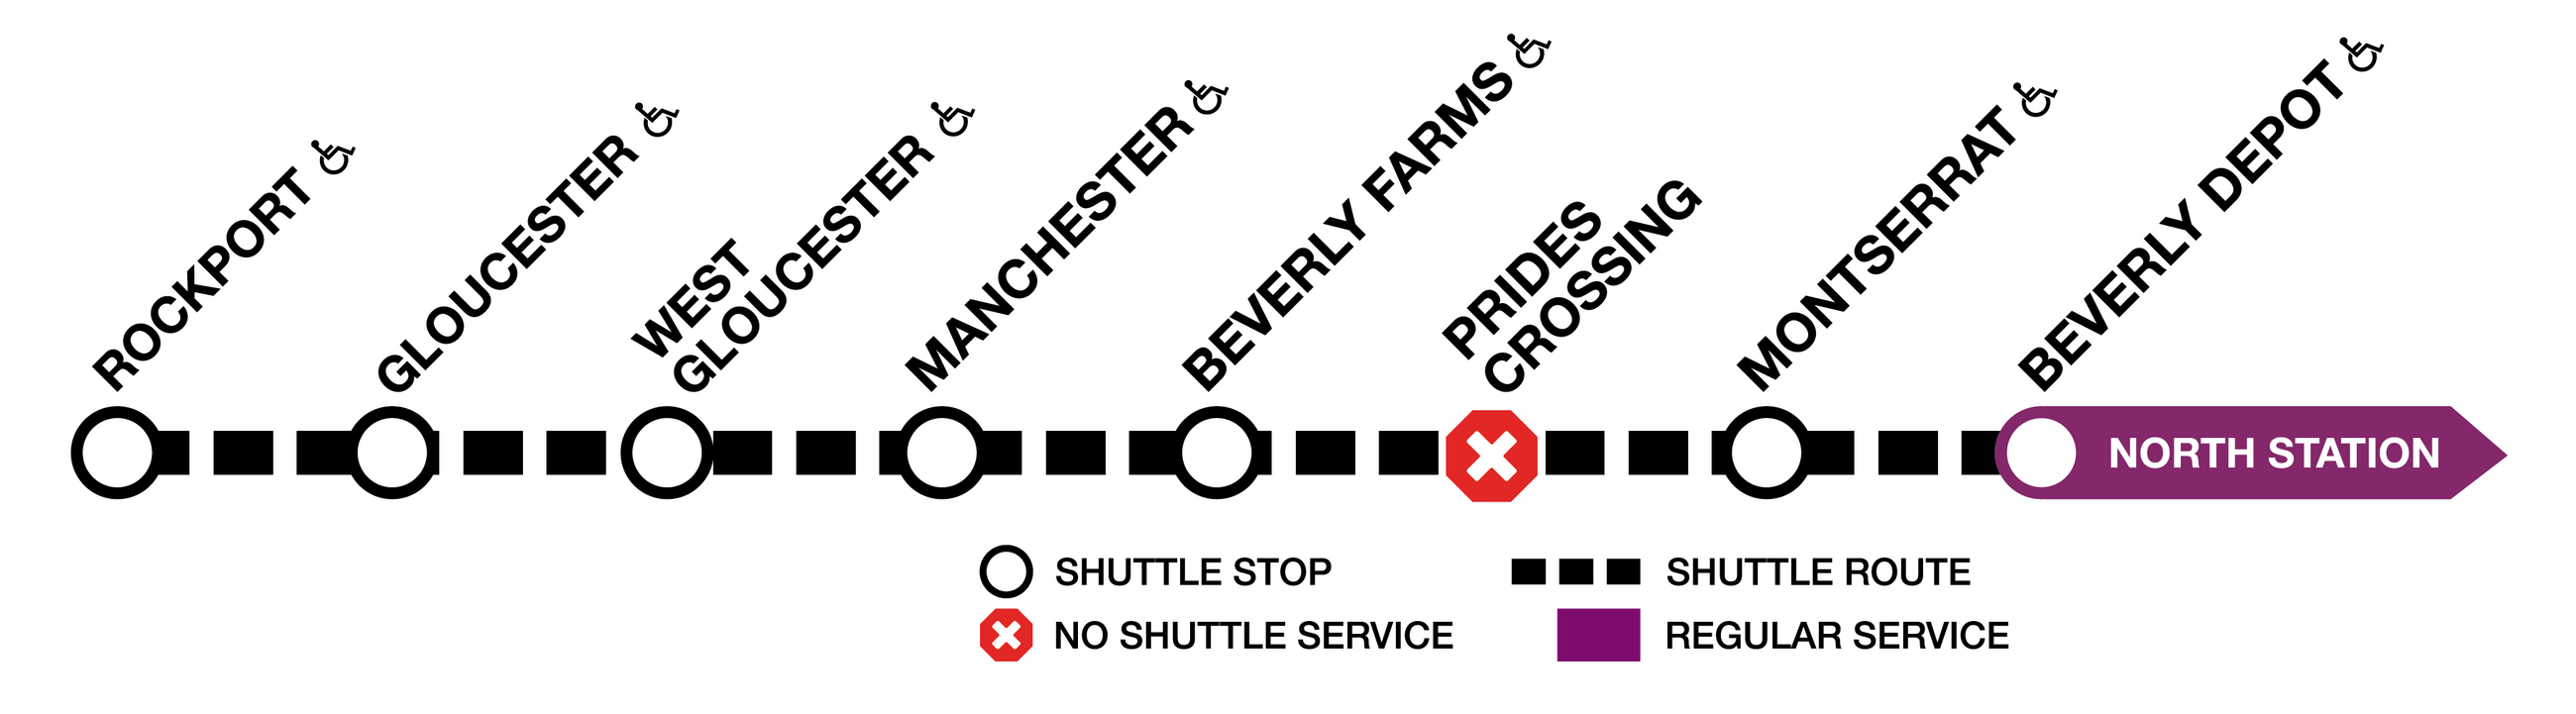 Shuttle diagram for the Rockport Line, showing shuttles running between Rockport and Beverly Depot, with no shuttle services at Prides Crossing.